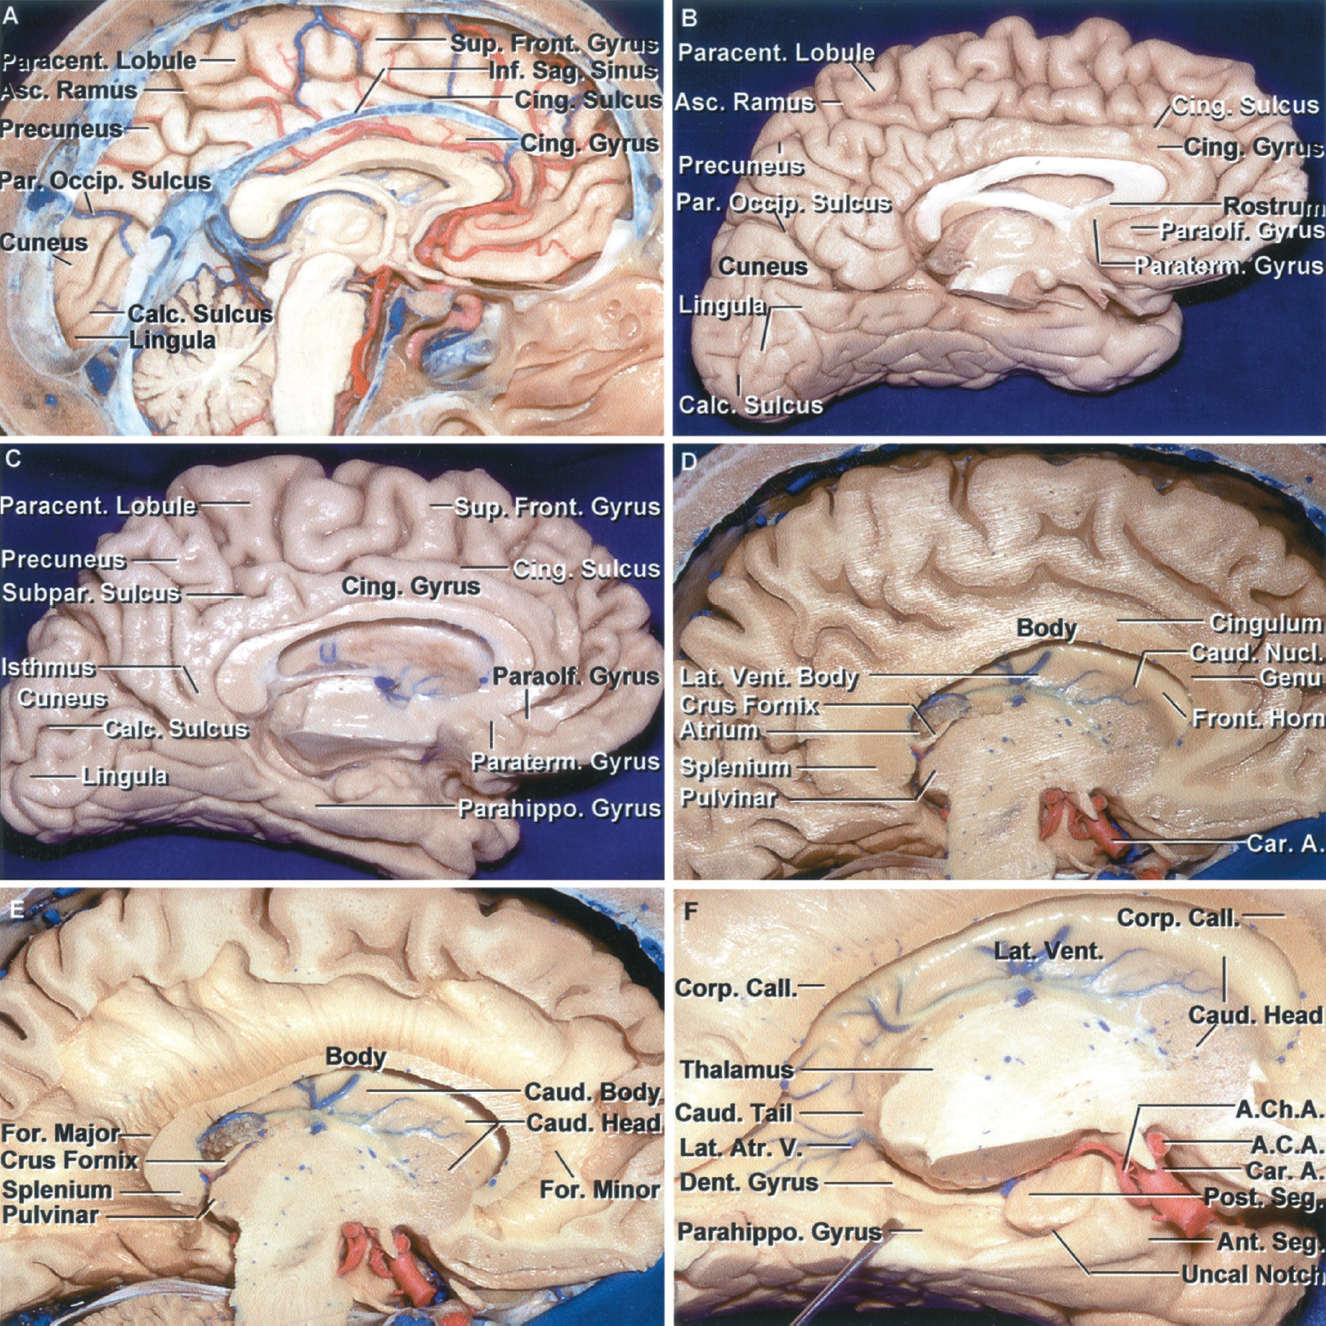 Figure 1.7 A-F. A–C, medial surface of the right cerebral hemisphere. A, the falx, except for the inferior sagittal sinus, has been removed. The majority of the medial surface of the frontal lobe is formed by the cingulate and superior frontal gyri that are separated by the cingulate sulcus. The ascending ramus of the cingulate sulcus passes behind the paracentral lobule, the site of the extension of the pre- and postcentral gyri onto the medial surface of the hemisphere. The medial surface behind the paracentral lobule is formed by the precuneus, cuneus, and lingula and the posterior part of the cingulate sulcus. The precuneus is located between the paracentral lobule and parieto-occipital sulcus. The cuneus is located between the parieto-occipital and the calcarine sulci. The lingual gyrus (lingula) is located below the calcarine sulcus. B, medial surface of another hemisphere. The paraterminal and paraolfactory gyri are located below the rostrum of the corpus callosum. The precuneus is located between the ascending ramus of the cingulate sulcus, the parieto-occipital sulcus, and the subparietal sulcus, a posterior extension of the cingulate sulcus. The cuneus is located between the parieto-occipital and calcarine sulci, and the lingula is located below the calcarine sulcus. The parieto-occipital and calcarine sulci join to create a Y-shaped configuration. The parahippocampal gyrus forms the majority of the medial surface of the temporal lobe. C, another hemisphere. The medial surface is formed by the paraterminal, paraolfactory, superior frontal, and cingulate gyri and the paracentral lobule, precuneus, cuneus, lingula, and parahippocampal gyrus. The cingulate sulcus narrows behind the splenium to form the isthmus of the cingulate sulcus that blends along the medial surface of the temporal lobe into the parahippocampal gyrus. D–K, fiber dissection of the medial surface of the hemisphere. D, the section extends through the medial part of the right hemisphere and thalamus. It crosses the medial part of the head of the caudate nucleus anteriorly and the pulvinar of the thalamus posteriorly. The genu of the corpus callosum wraps around the frontal horn. The body of the corpus callosum forms the roof of the body of the lateral ventricle and the splenium is located adjacent to the atrium. The caudate nucleus is exposed in the lateral wall of the frontal horn and the body of the ventricle. The cingulum, a bundle of association fibers, wraps around the outer border of the corpus callosum in the depths of the cingulate gyrus. E, the cingulum and gray matter of the cingulate gyrus have been removed to expose the fibers radiating laterally out of the corpus callosum. The cross section of the corpus callosum is the part nearest the reader and the fibers radiate away from the cut edge around the margins of the lateral ventricle. Fibers passing through the genu of the corpus callosum form the forceps minor and the anterior wall of the frontal horn and the large bundle passing posteriorly from the splenium forms the forceps major creating a prominence, the bulb of the corpus callosum, in the medial wall of the atrium. The crus of the fornix wraps around the pulvinar in the anterior wall of the atrium. F, the brainstem has been removed to expose the uncus, which has anterior and posterior segments. The anterior segment faces the internal carotid artery. The posterior segment, facing posteromedially, is divided into an upper and lower part by the uncal notch. Removing the brainstem also exposes the parahippocampal and dentate gyri. The crus of the fornix and splenium have been removed to expose the caudate tail extending around the pulvinar.